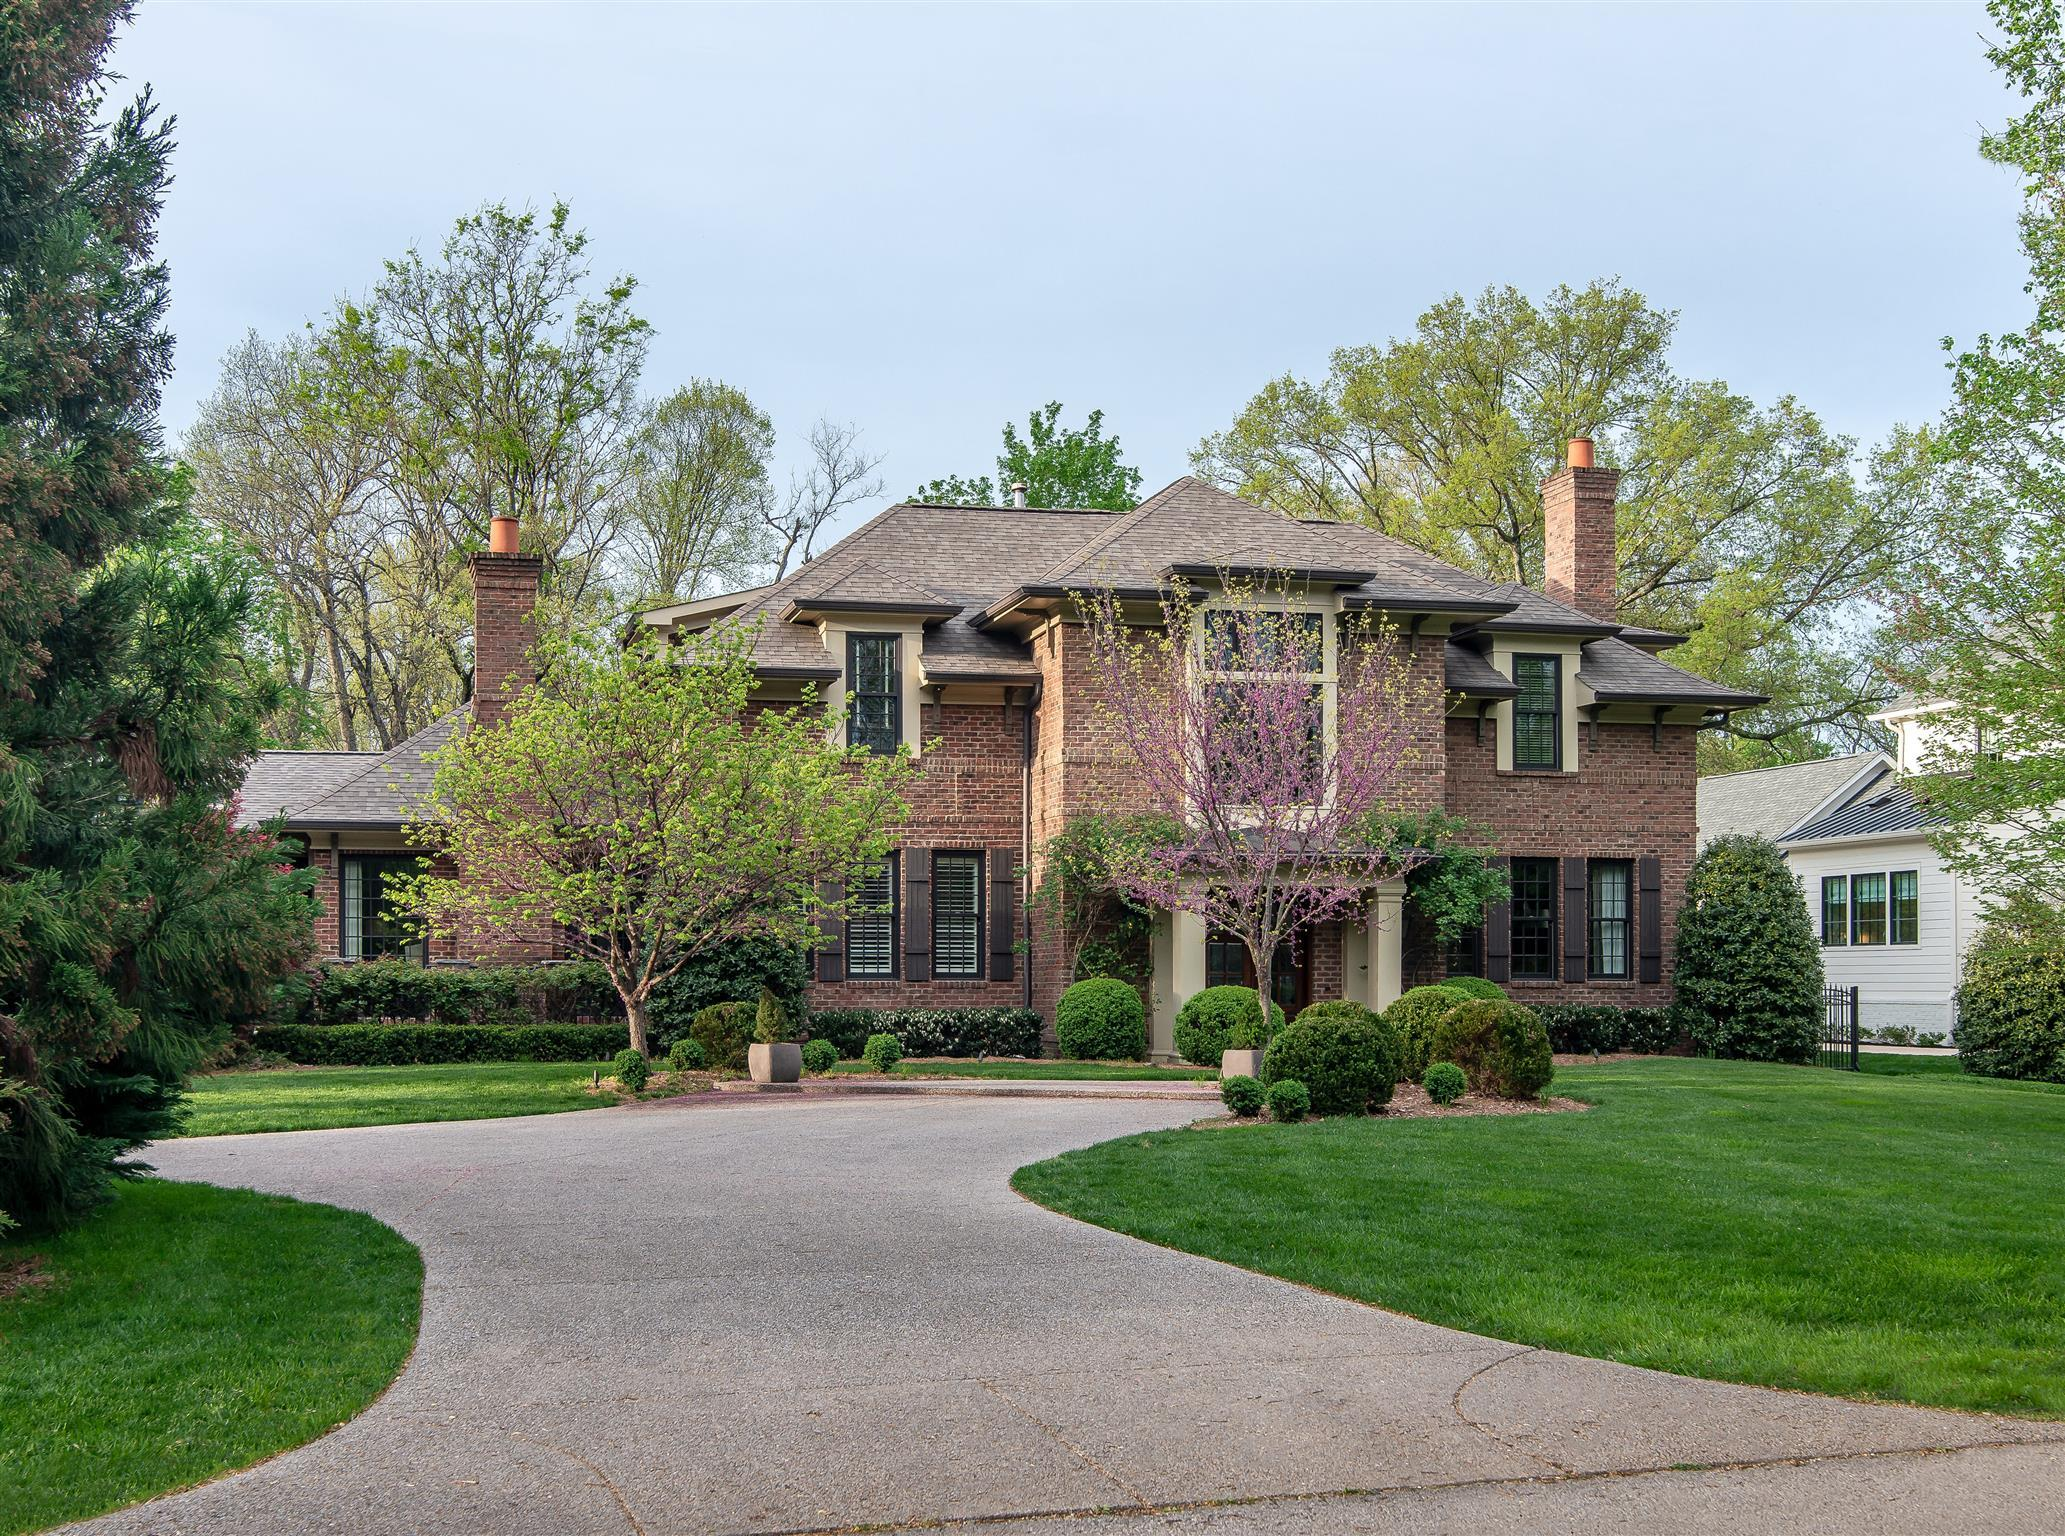 $2,279,000 - 7Br/7Ba -  for Sale in Stokes Tract, Nashville